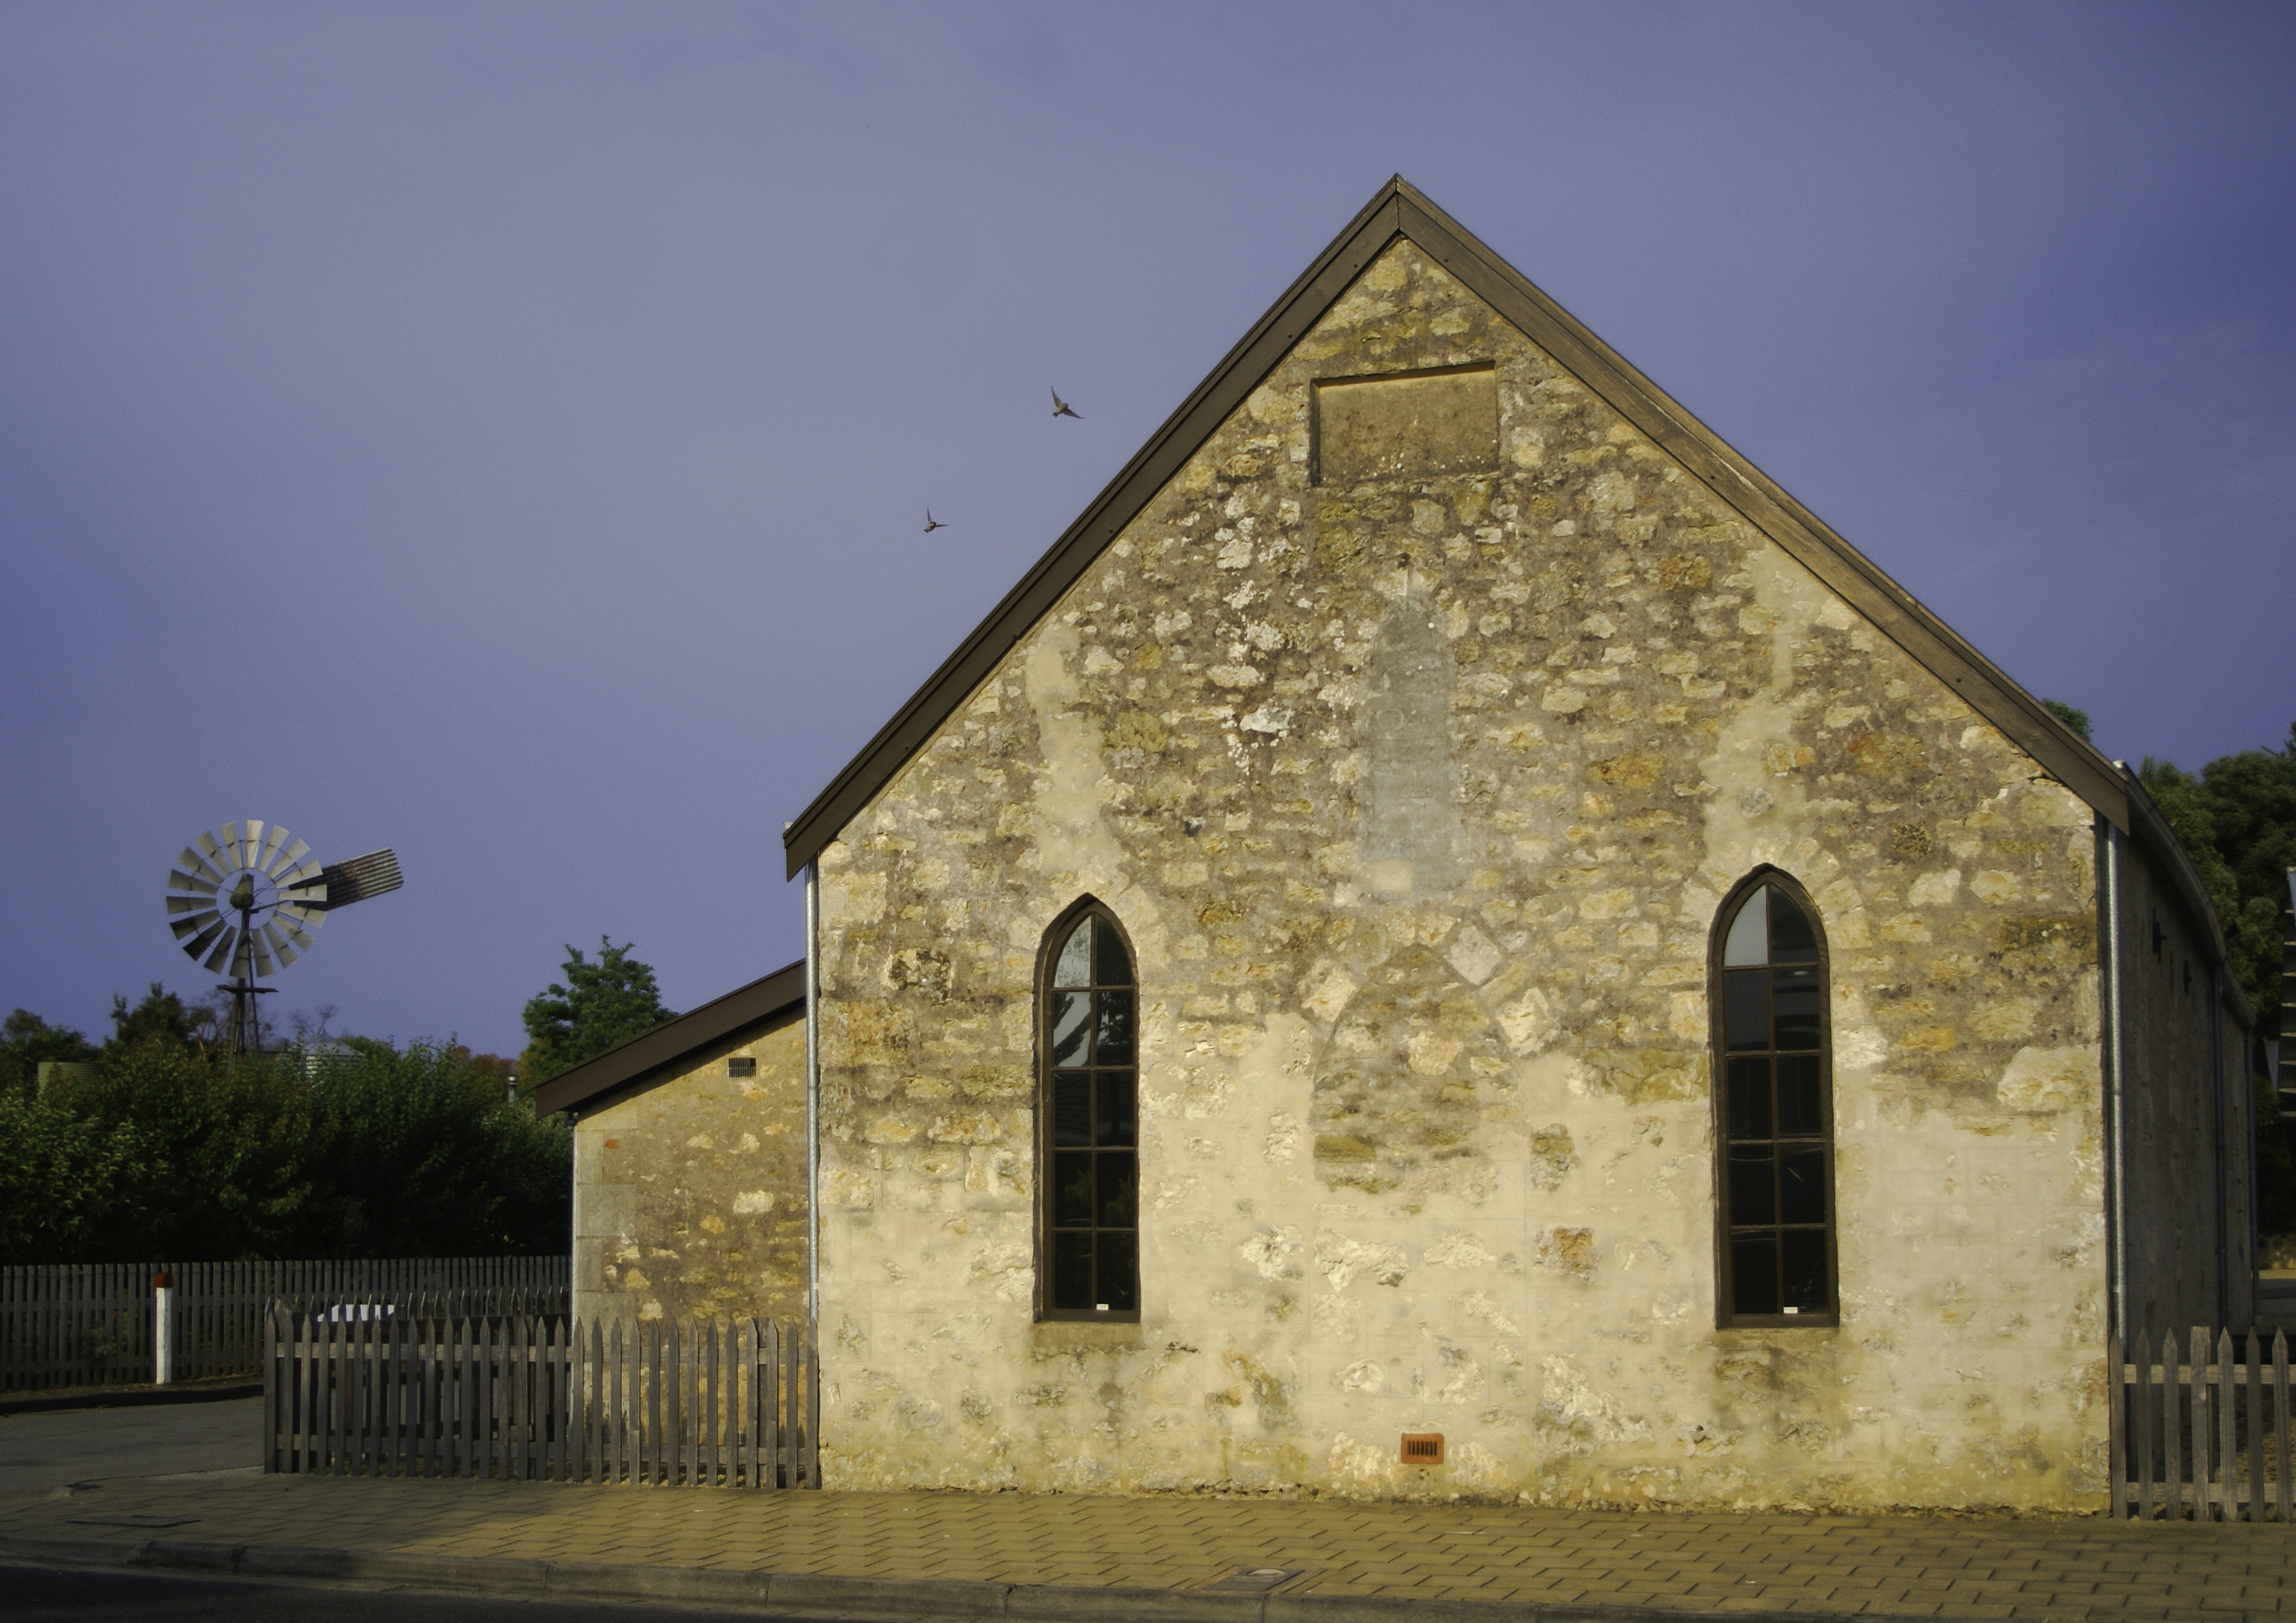 Woods-Mackillop Schoolhouse Penola Limestone Coast South Australia, the image I was thrilled to capture just at the right moment